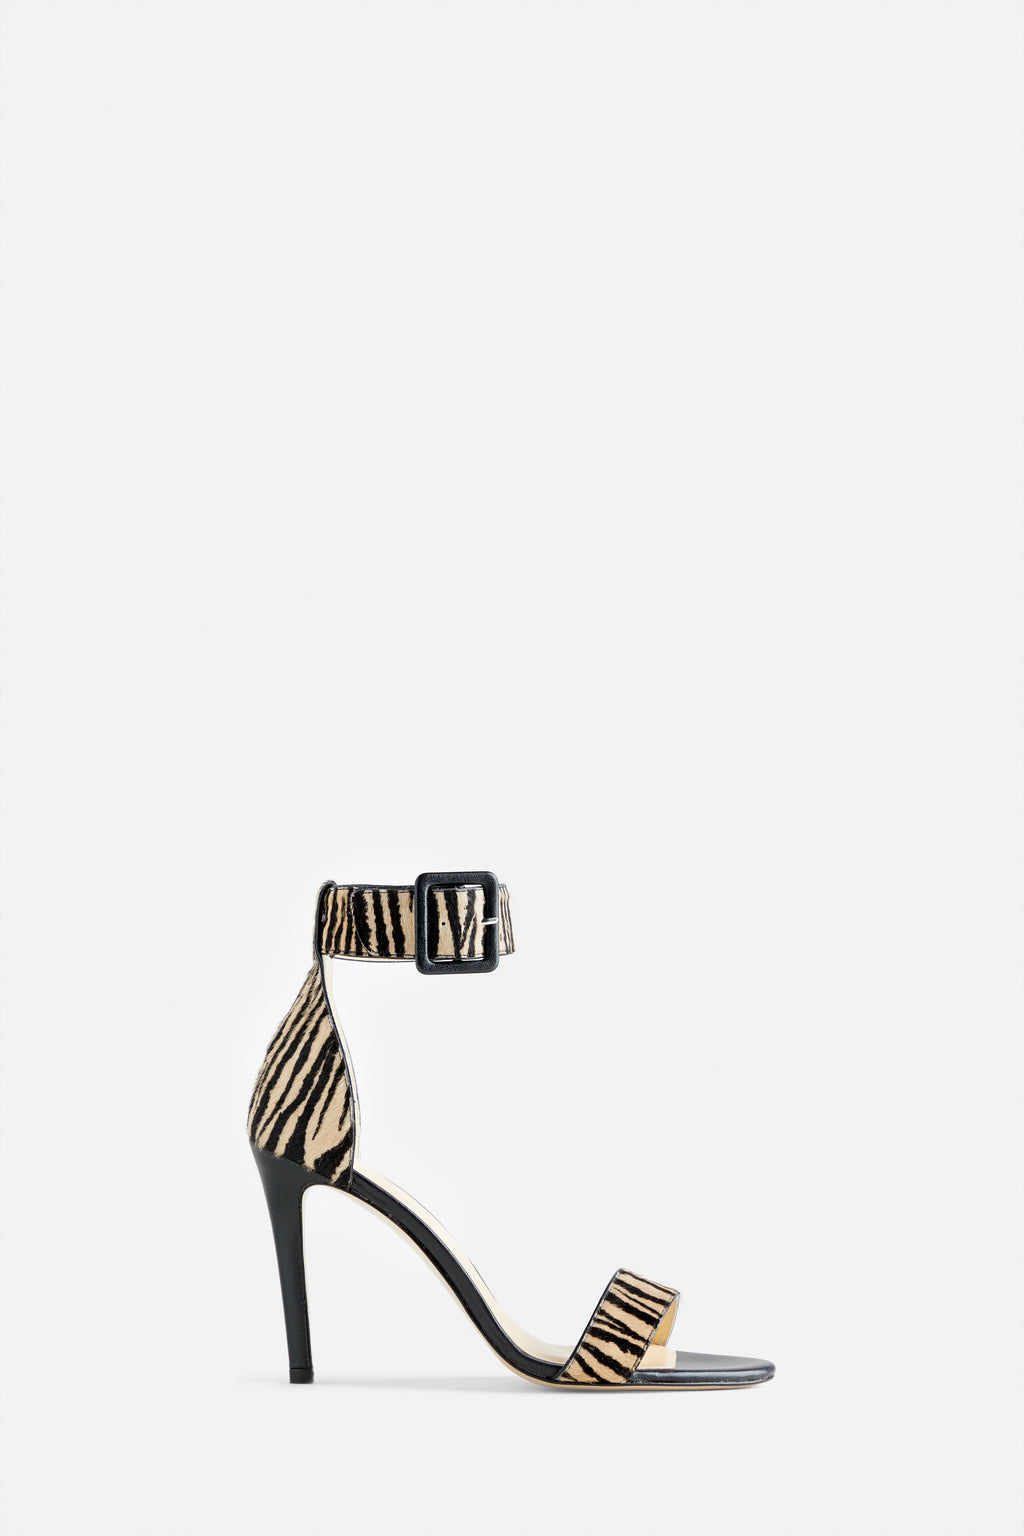 The Kelly Stiletto Sandal in Zebra Printed Calf Hair and Black Leather